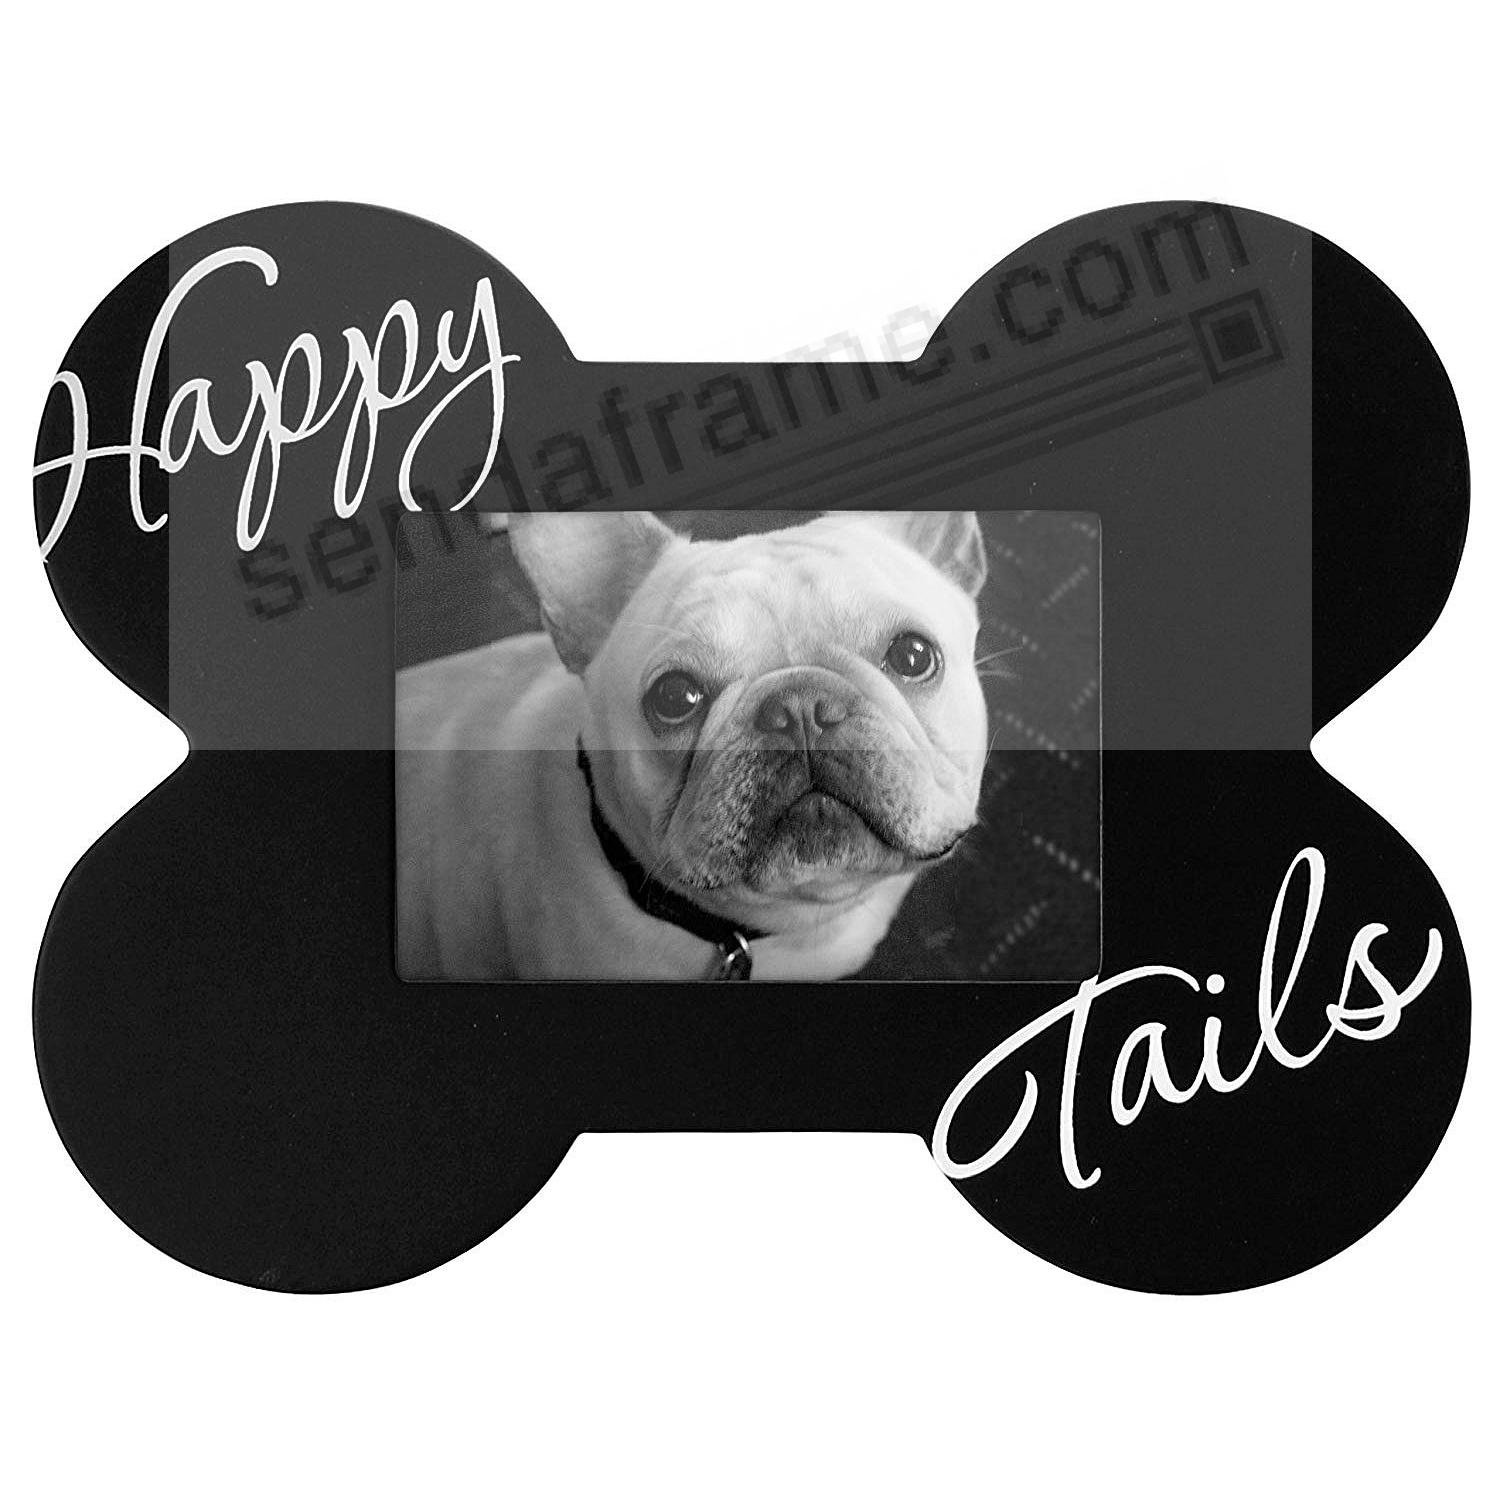 HAPPY TAILS bone frame perfect for any dog lover